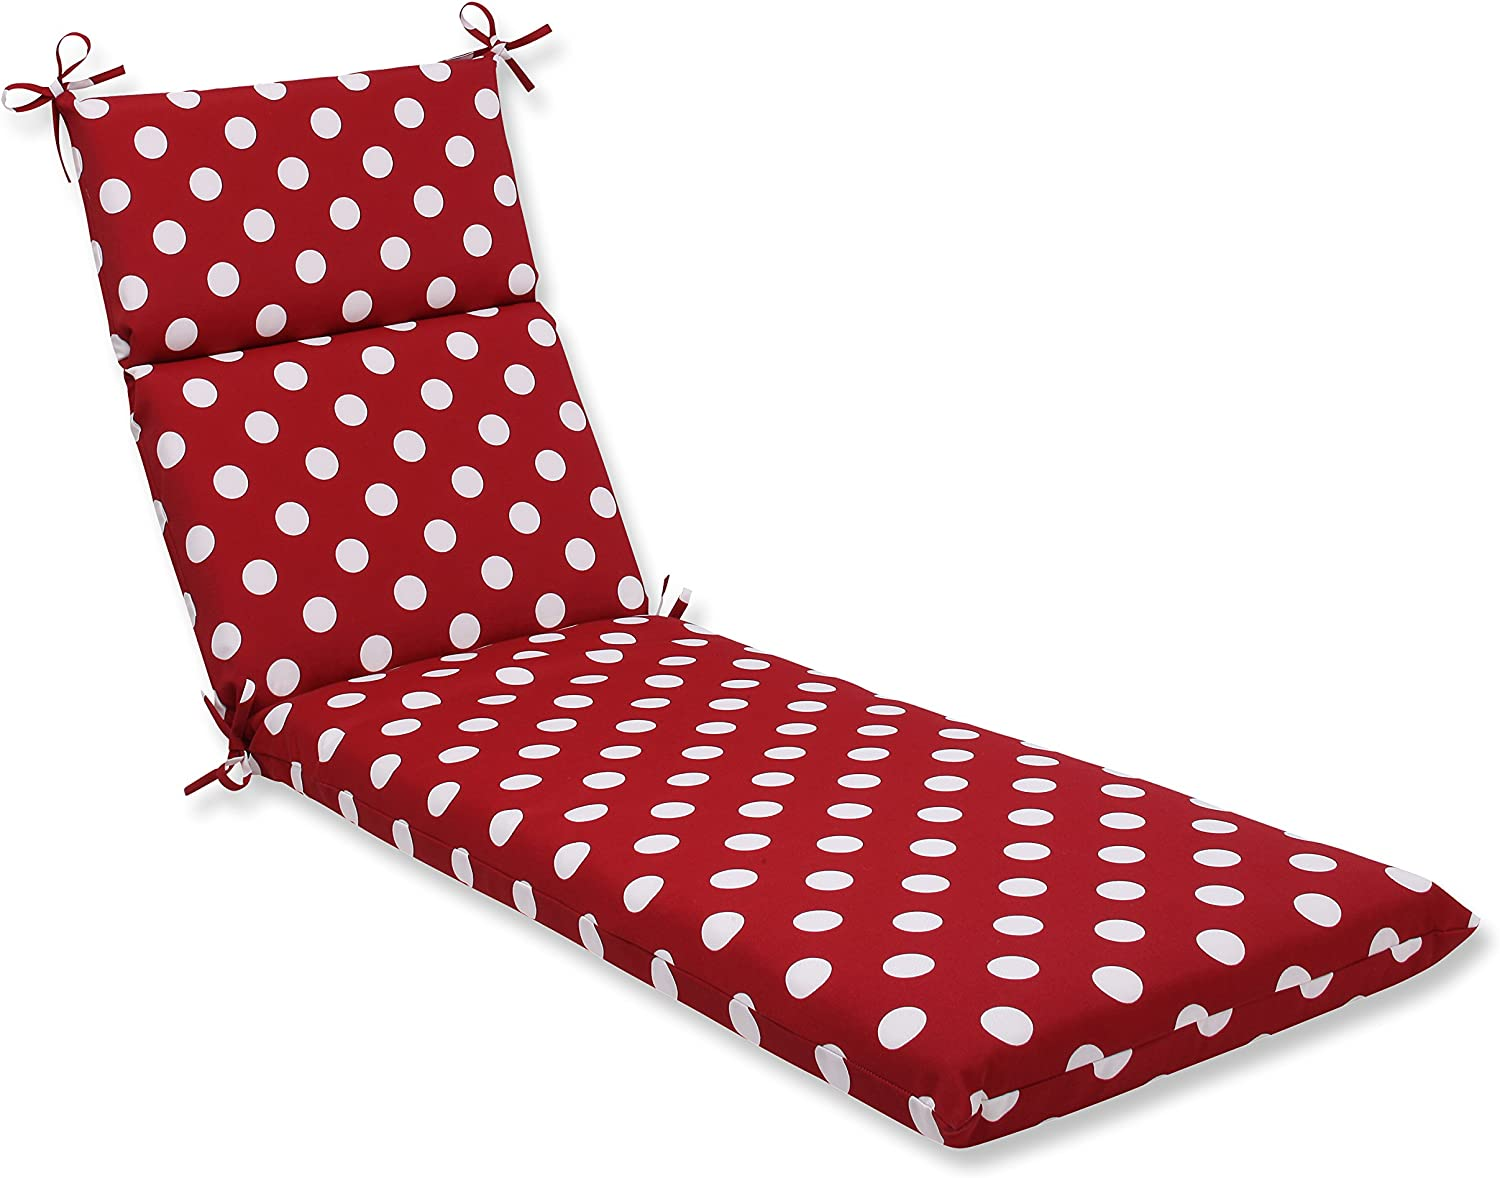 Pillow Perfect Indoor/Outdoor Polka Dot Chaise Lounge Cushion, 72.5 in. L X 21 in. W X 3 in. D, Red/White